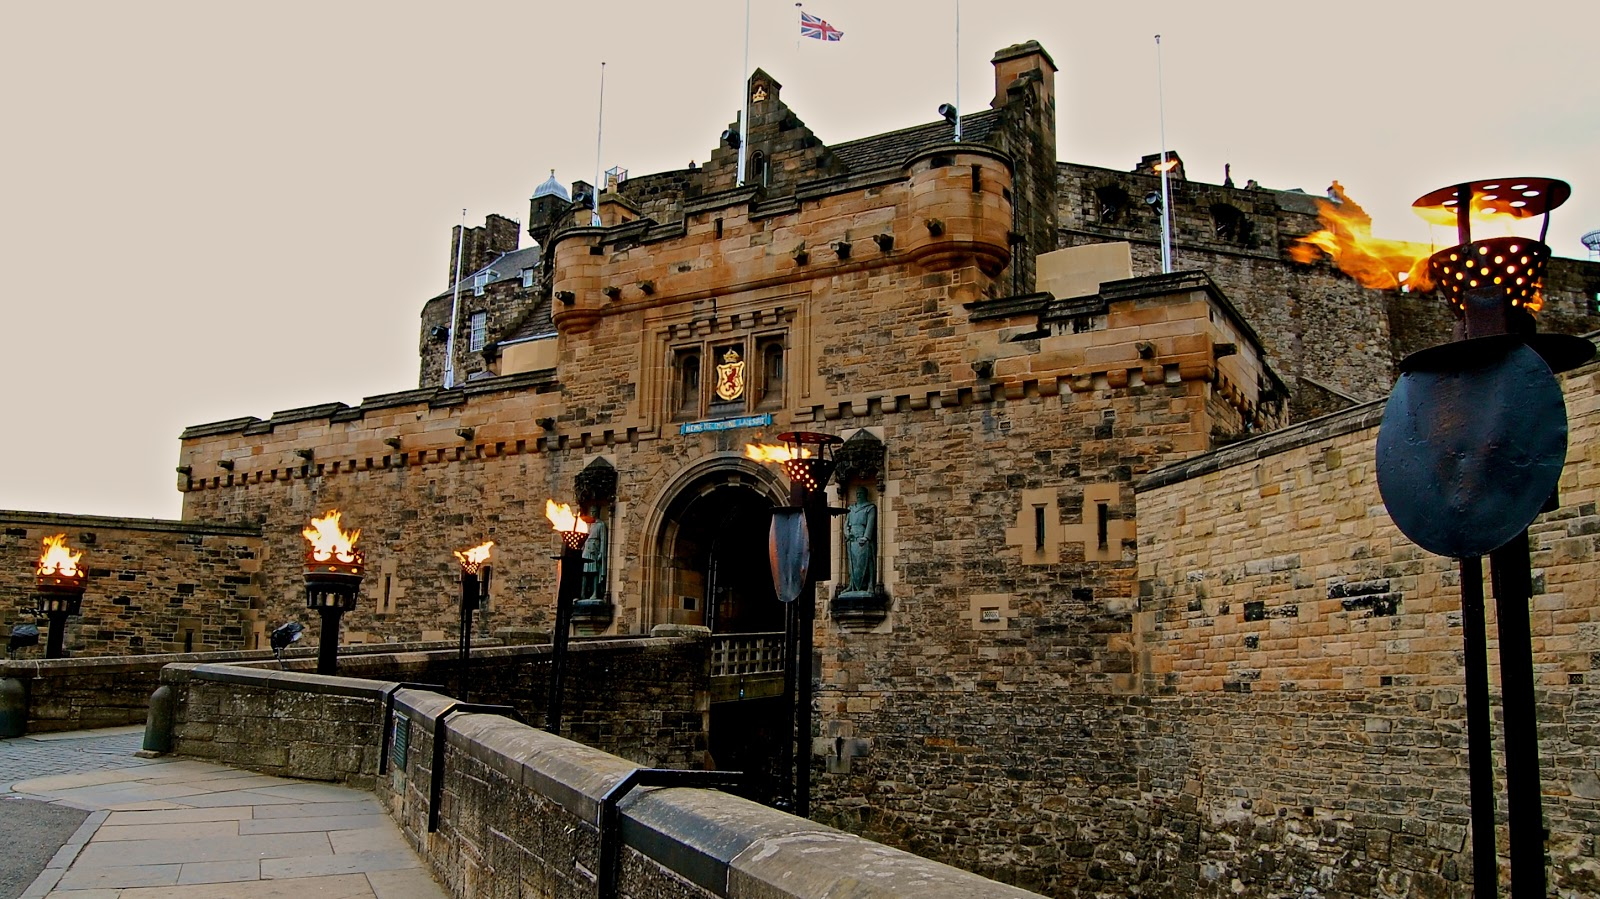 Entry gate to Edinburgh Castle, Scotland